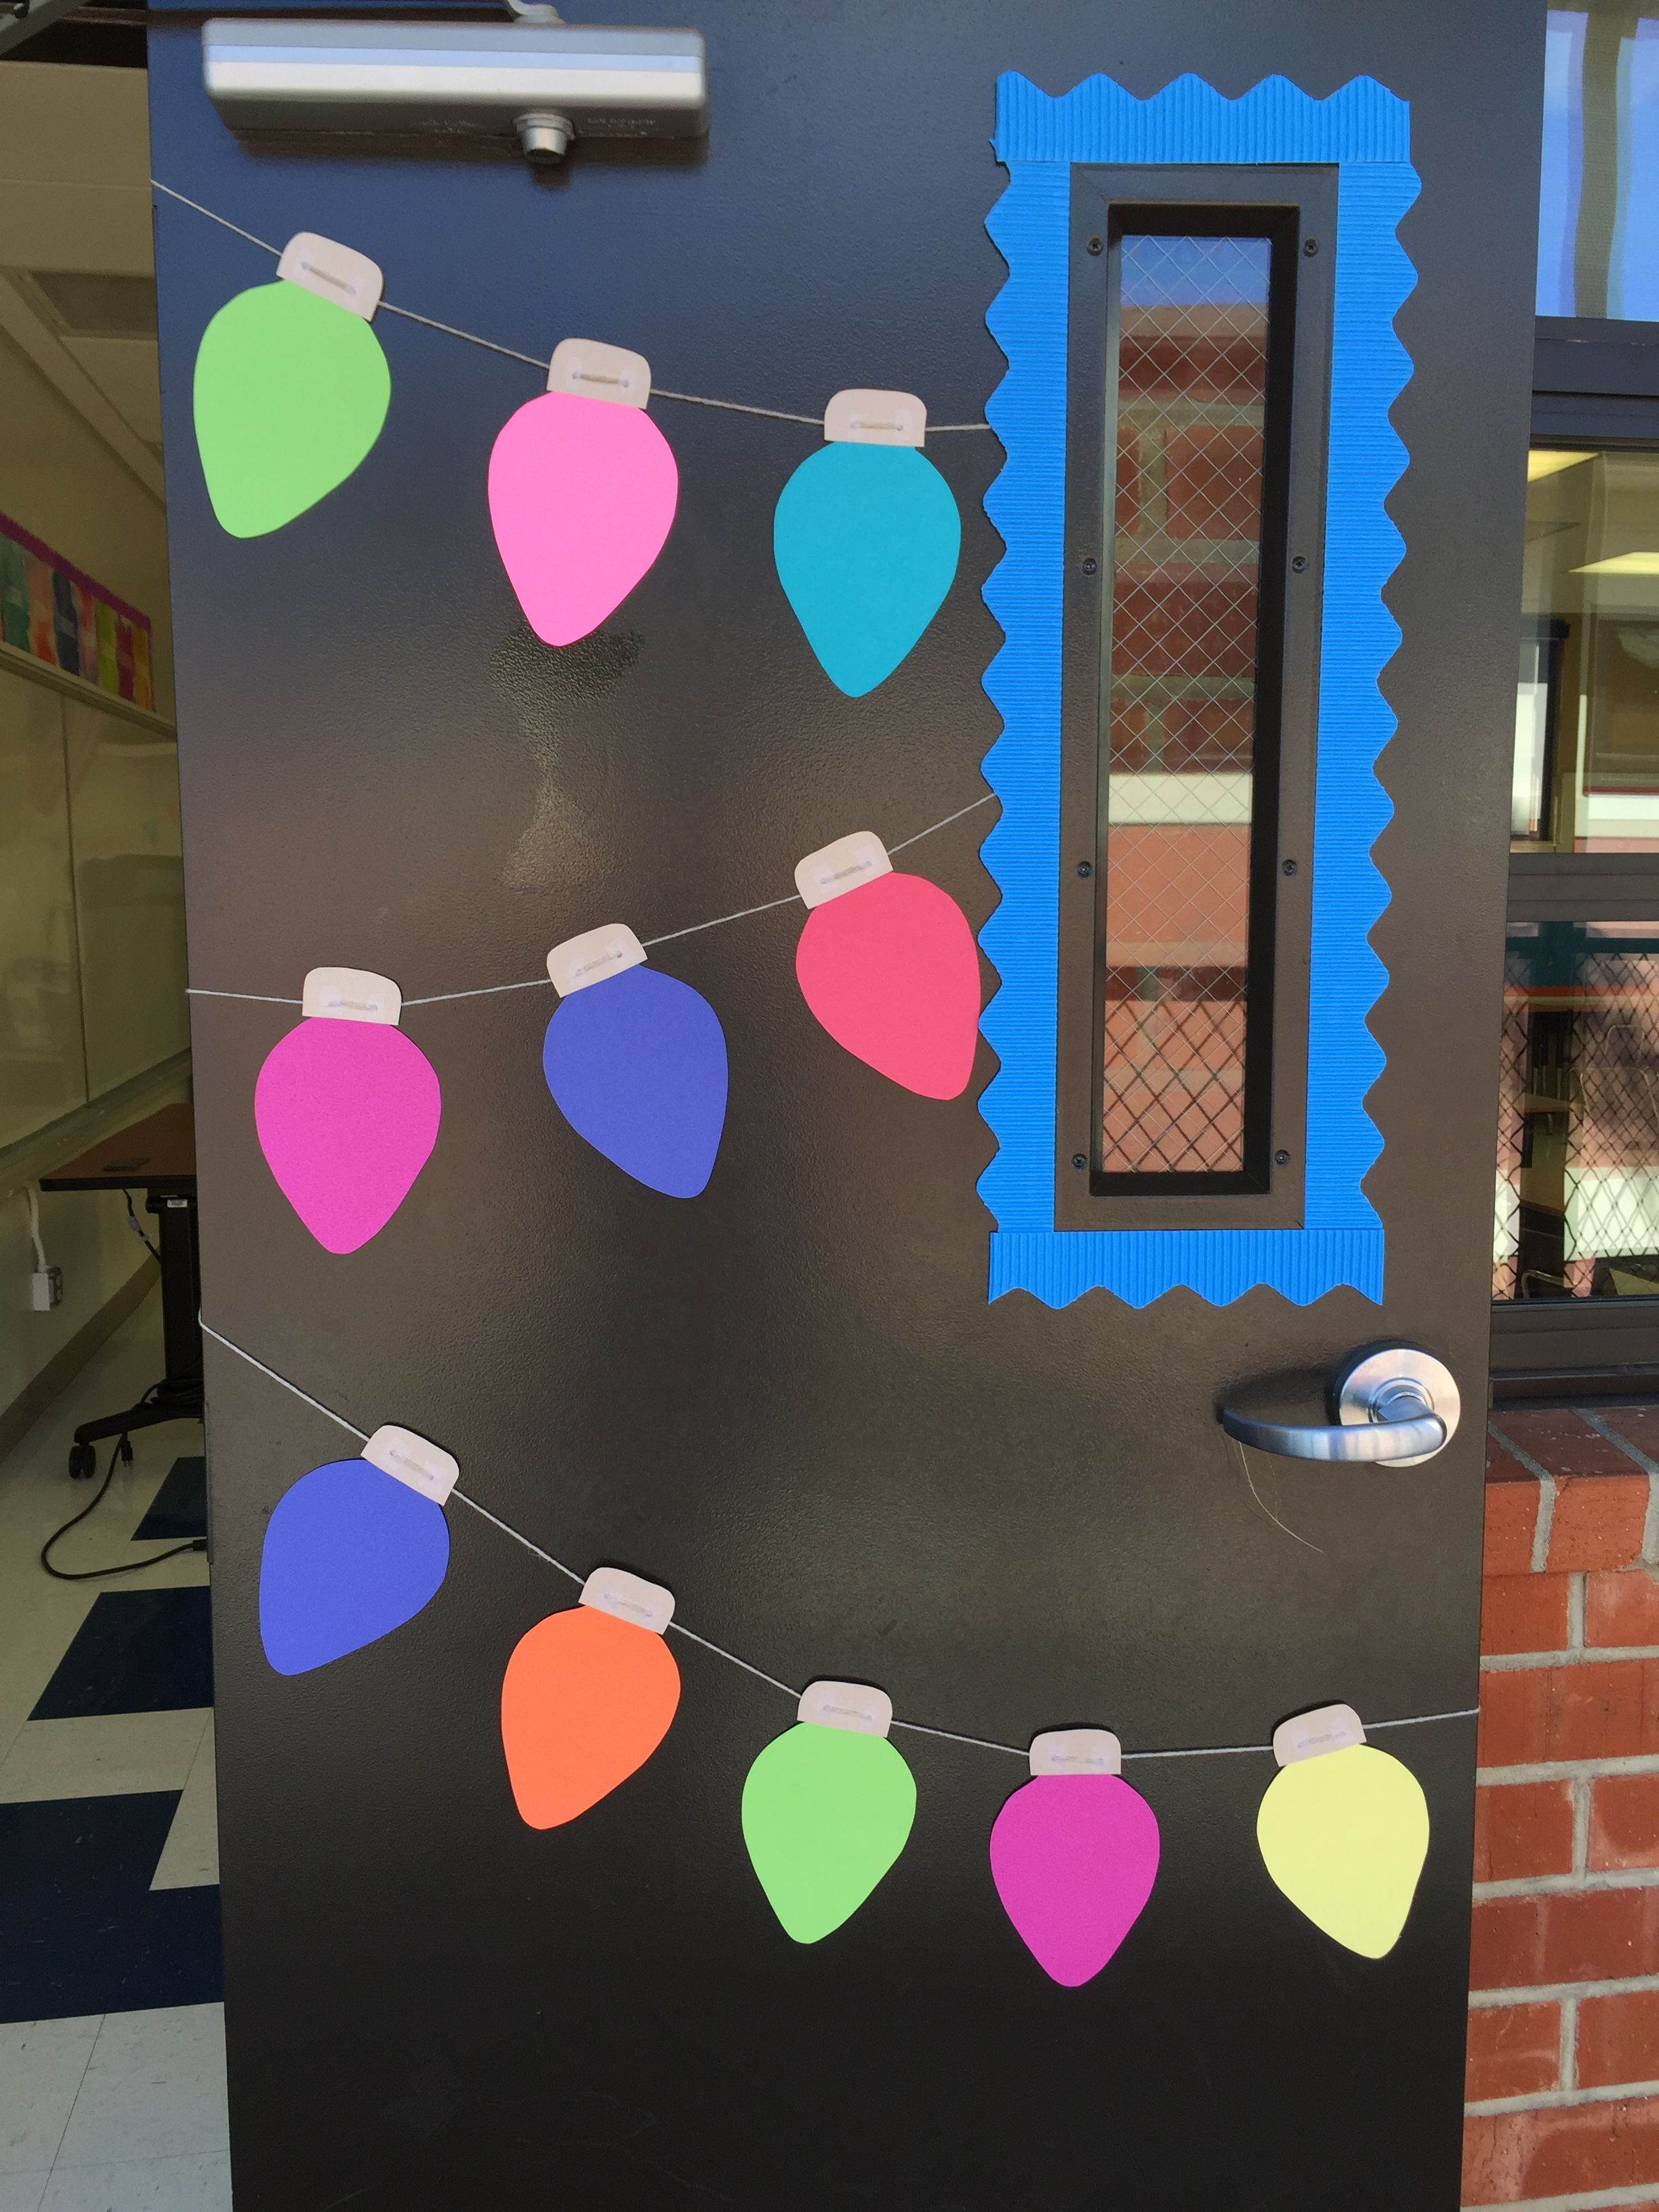 Christmas light bulb door for the classroom #christmasdoordecorationsforschool